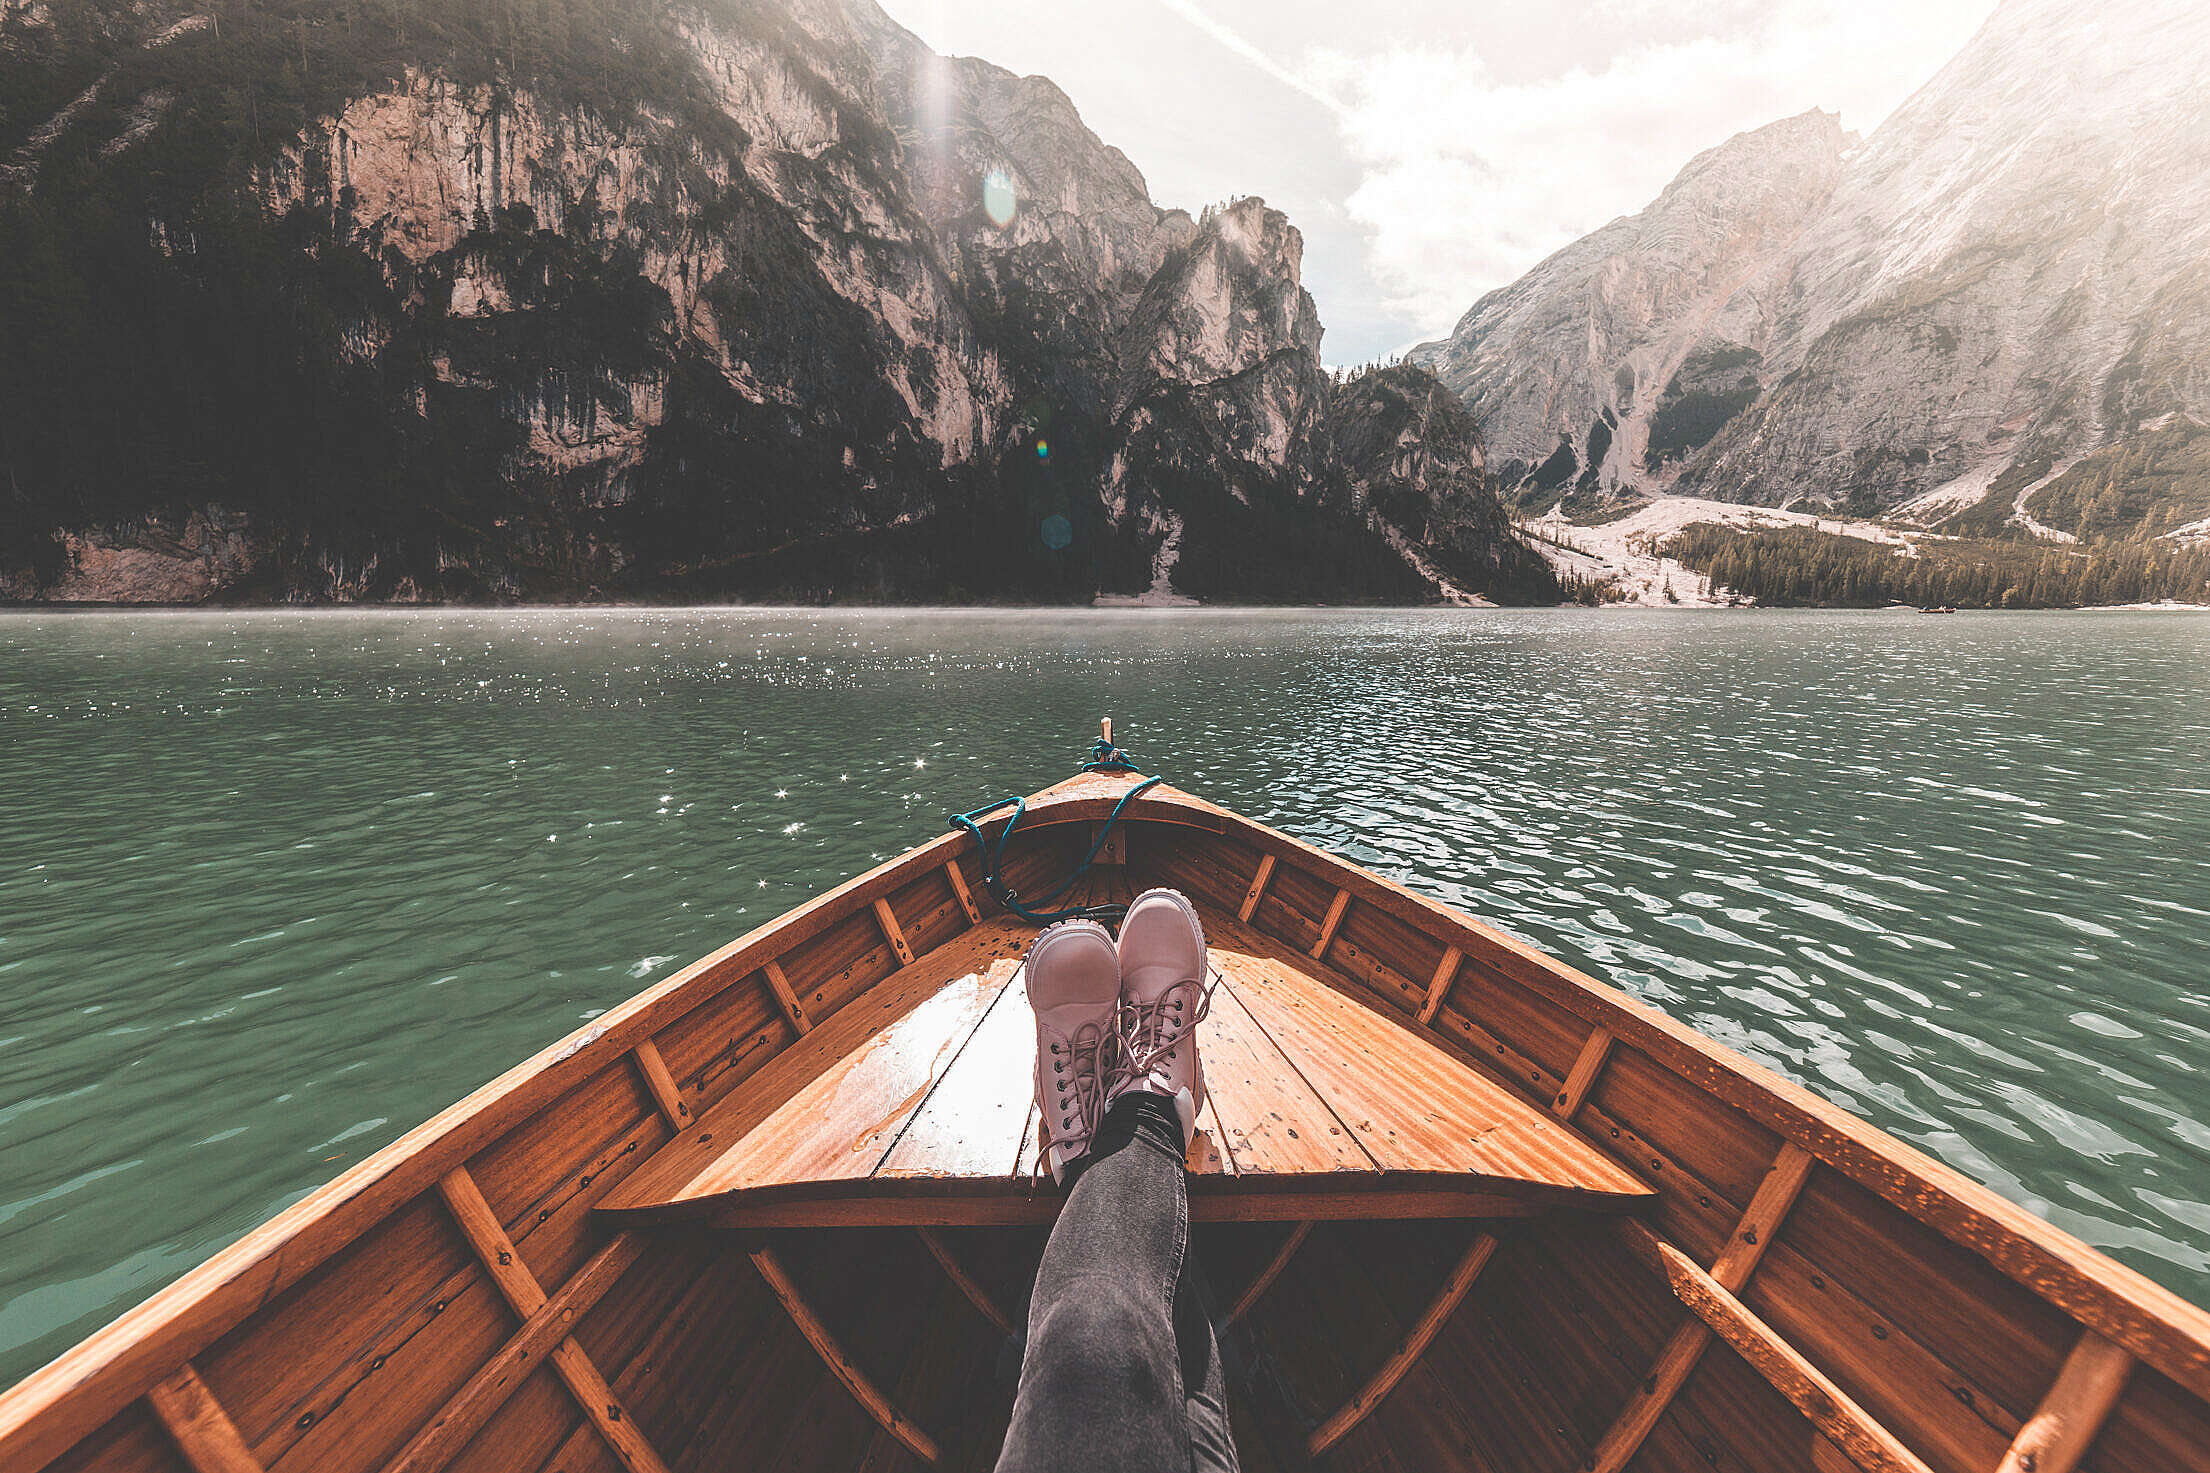 FPV Woman Legs on a Rowing Boat Free Stock Photo